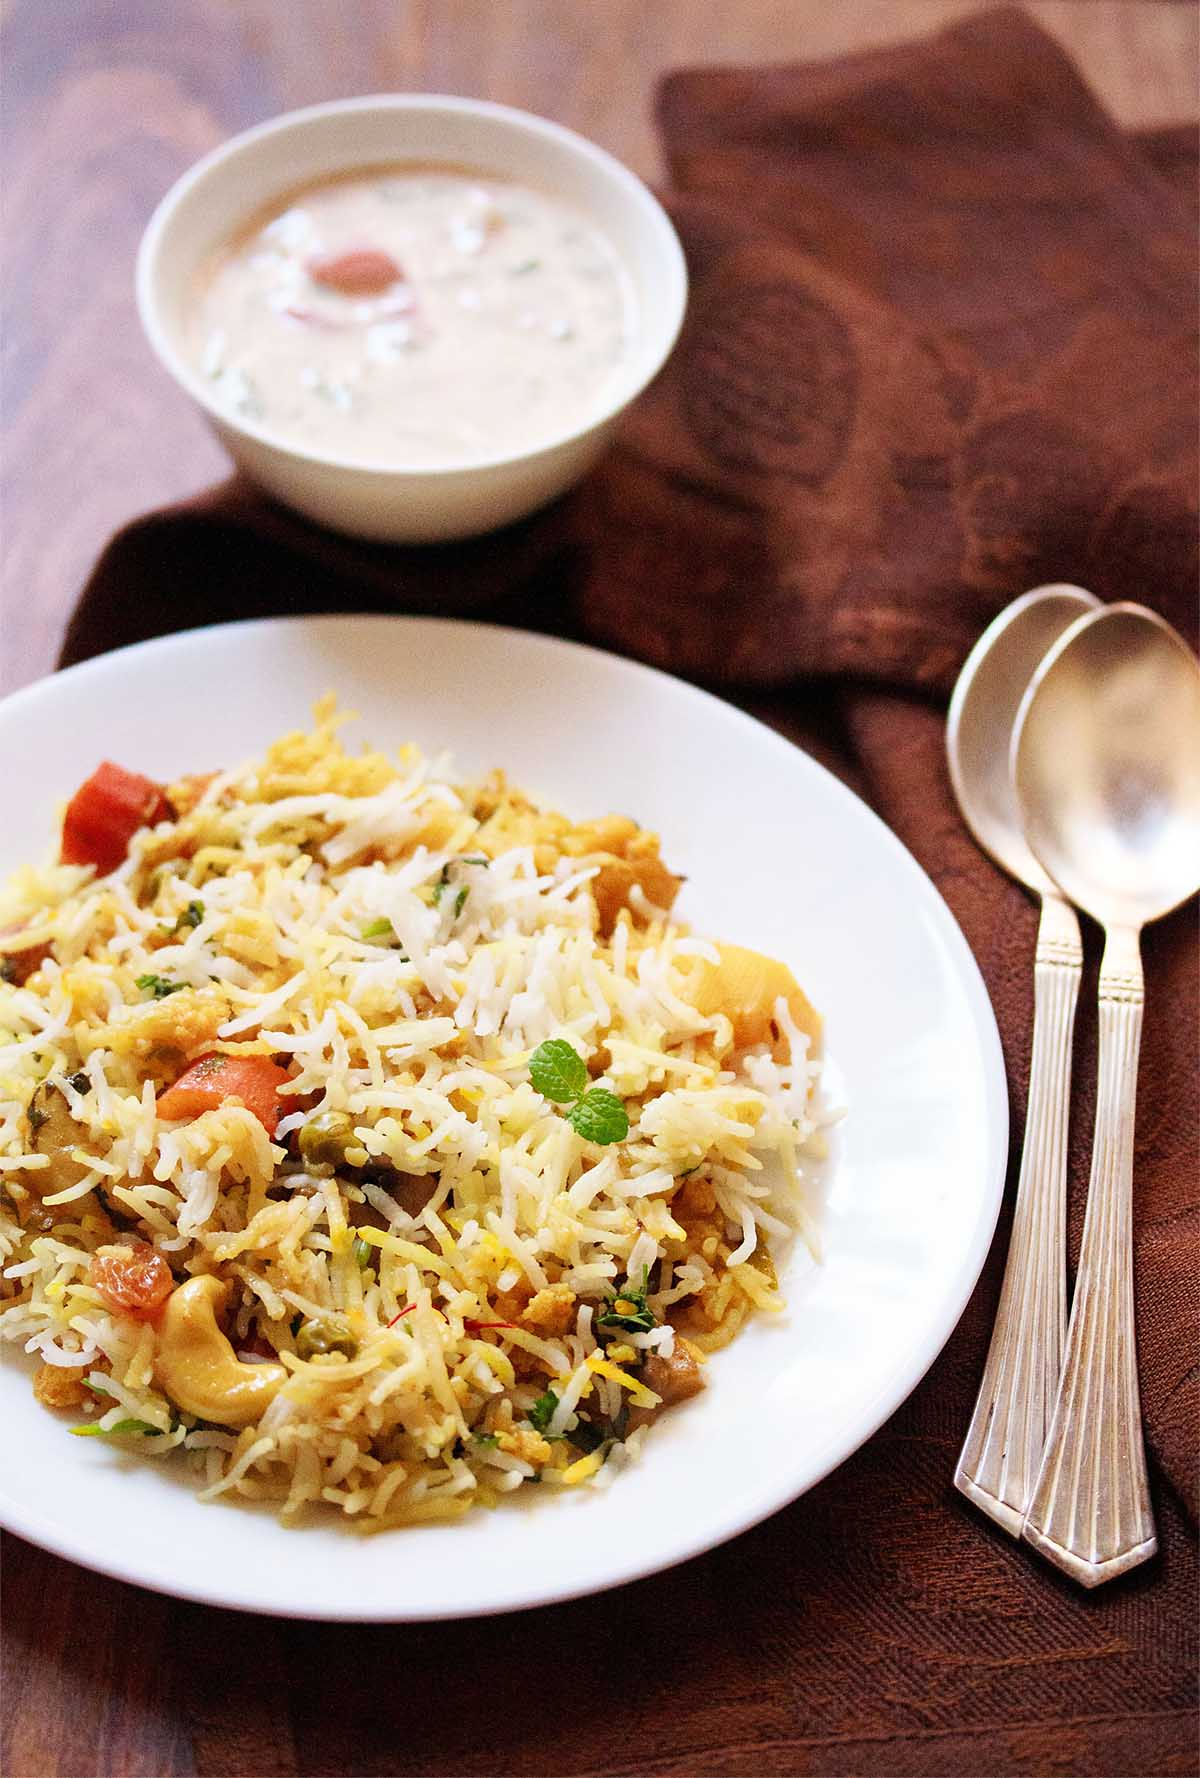 Top shot of veg biryani on white plate next to yogurt raita in small white bowl and two spoons on wooden table